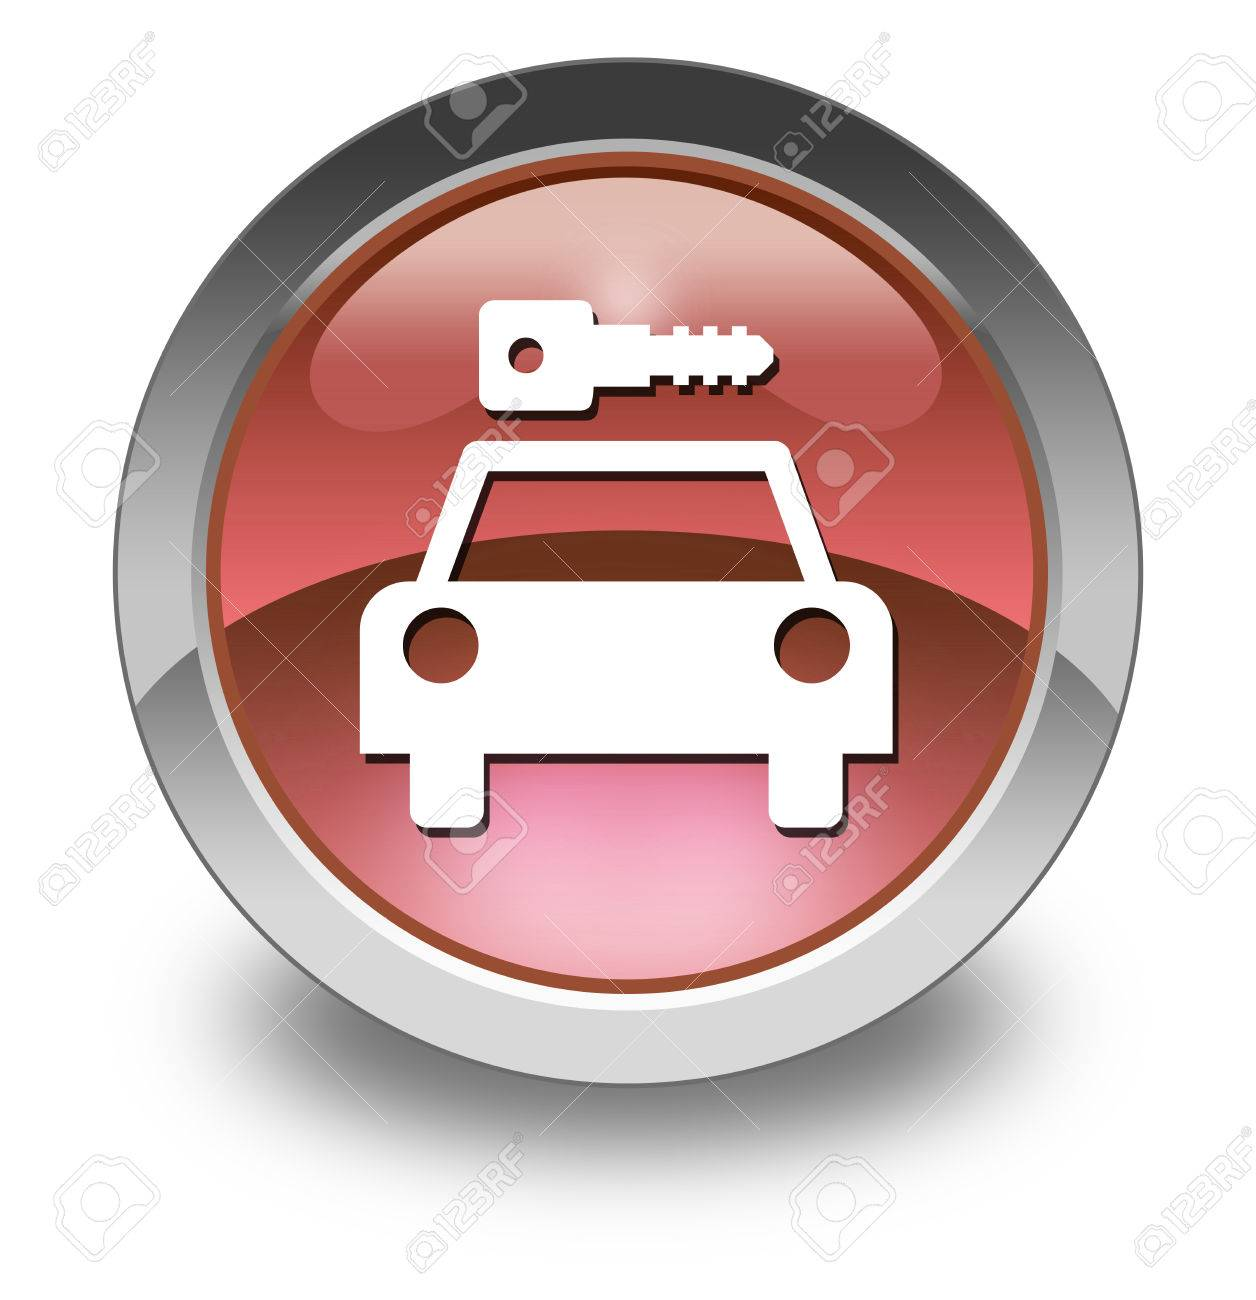 Icon, Button, Pictogram with Car Rental symbol Stock Photo - 27201057